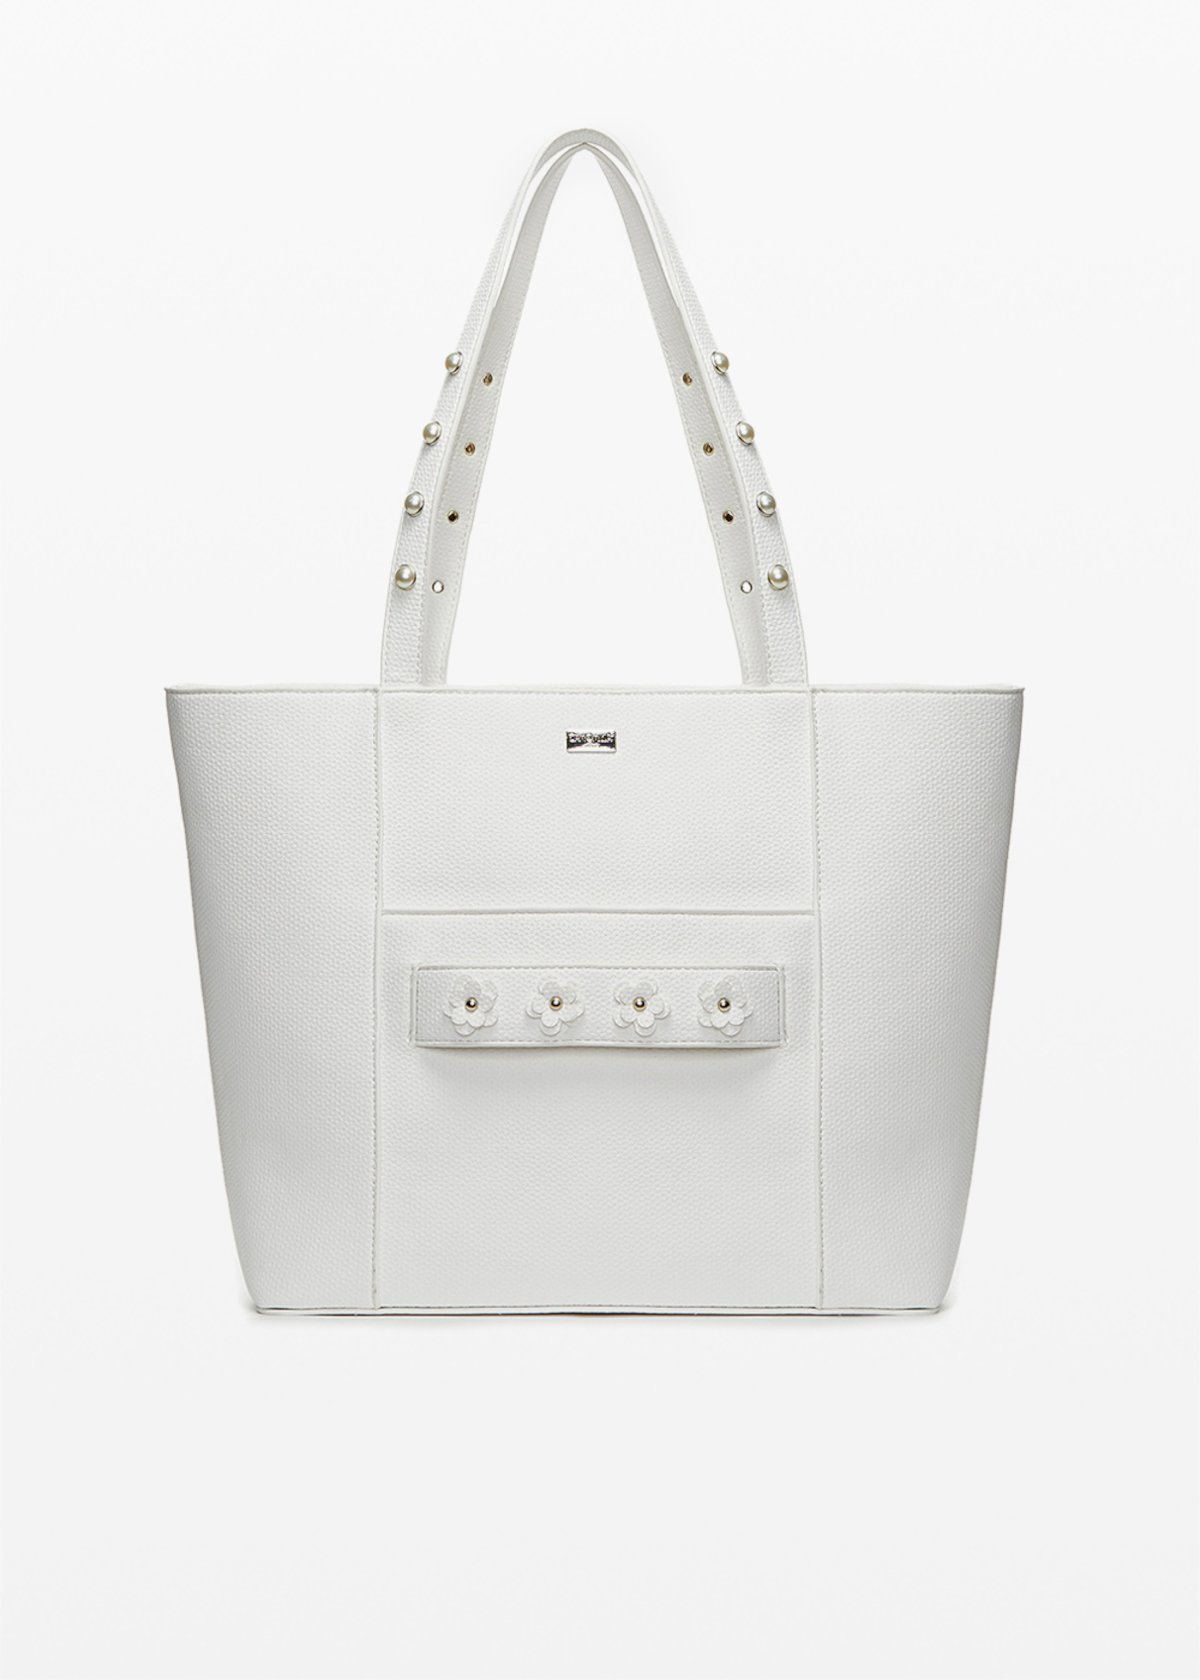 Shopping bag Boracay in ecopelle con dettaglio flowers - White - Donna - Immagine categoria